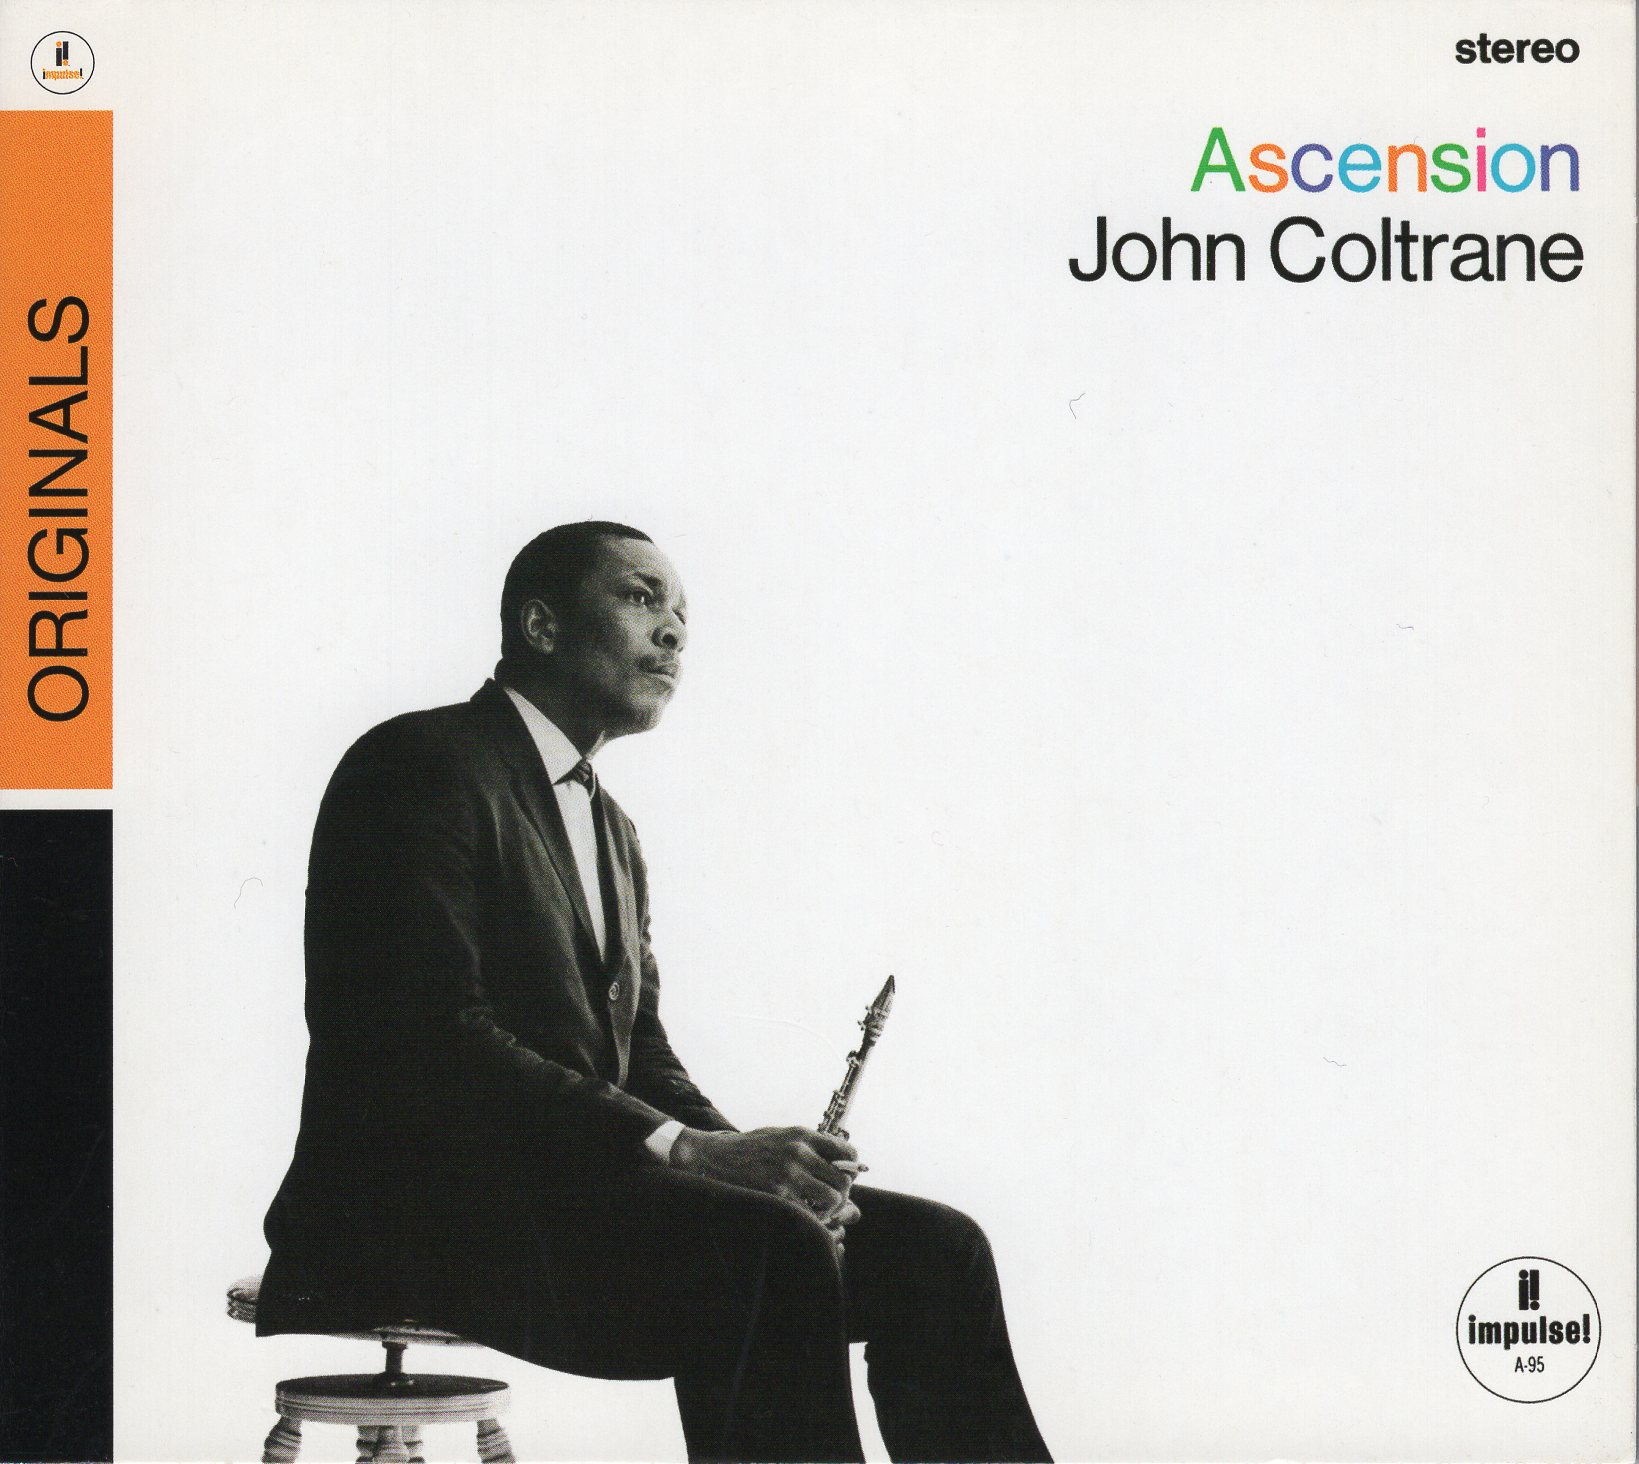 """Ascension"" John Coltrane"